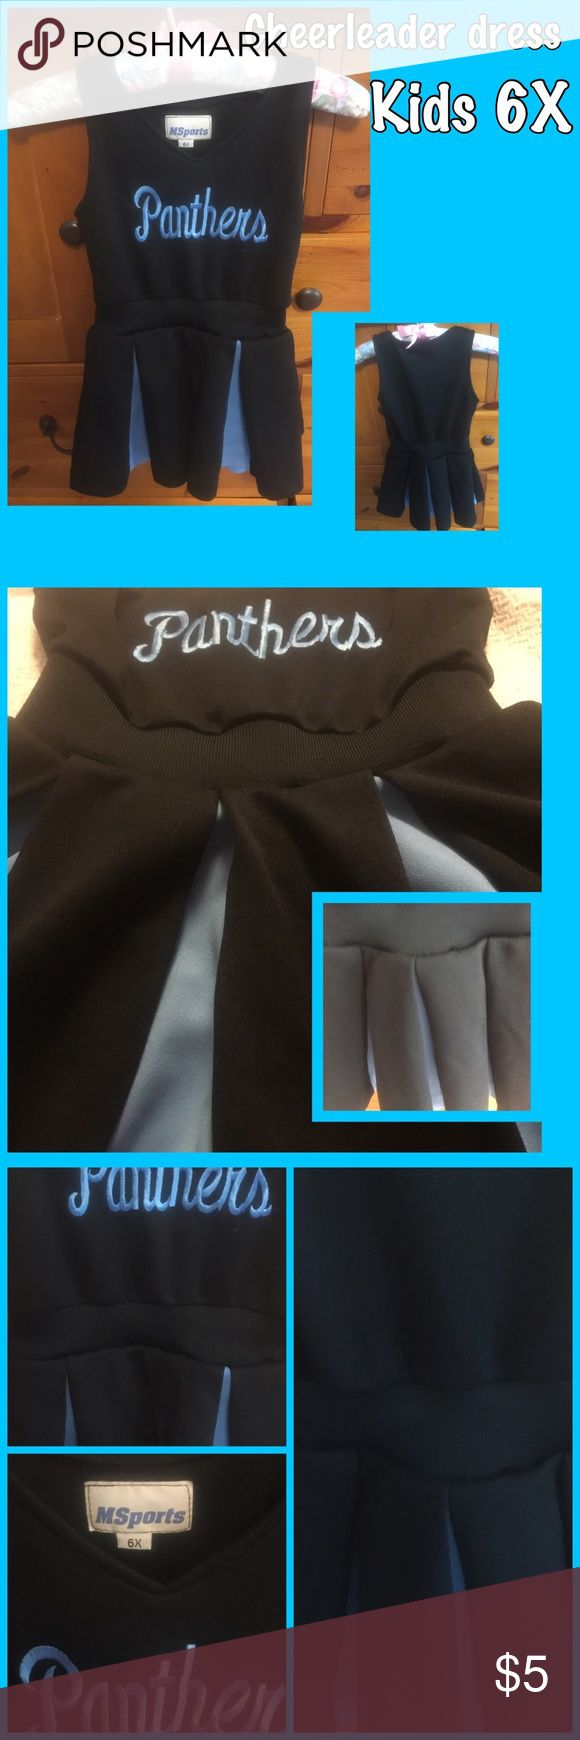 Panthers cheerleading outfit for kid size 6X 100% polyester kids size 6X Panthers black and blue cheerleading outfit Dresses Mini